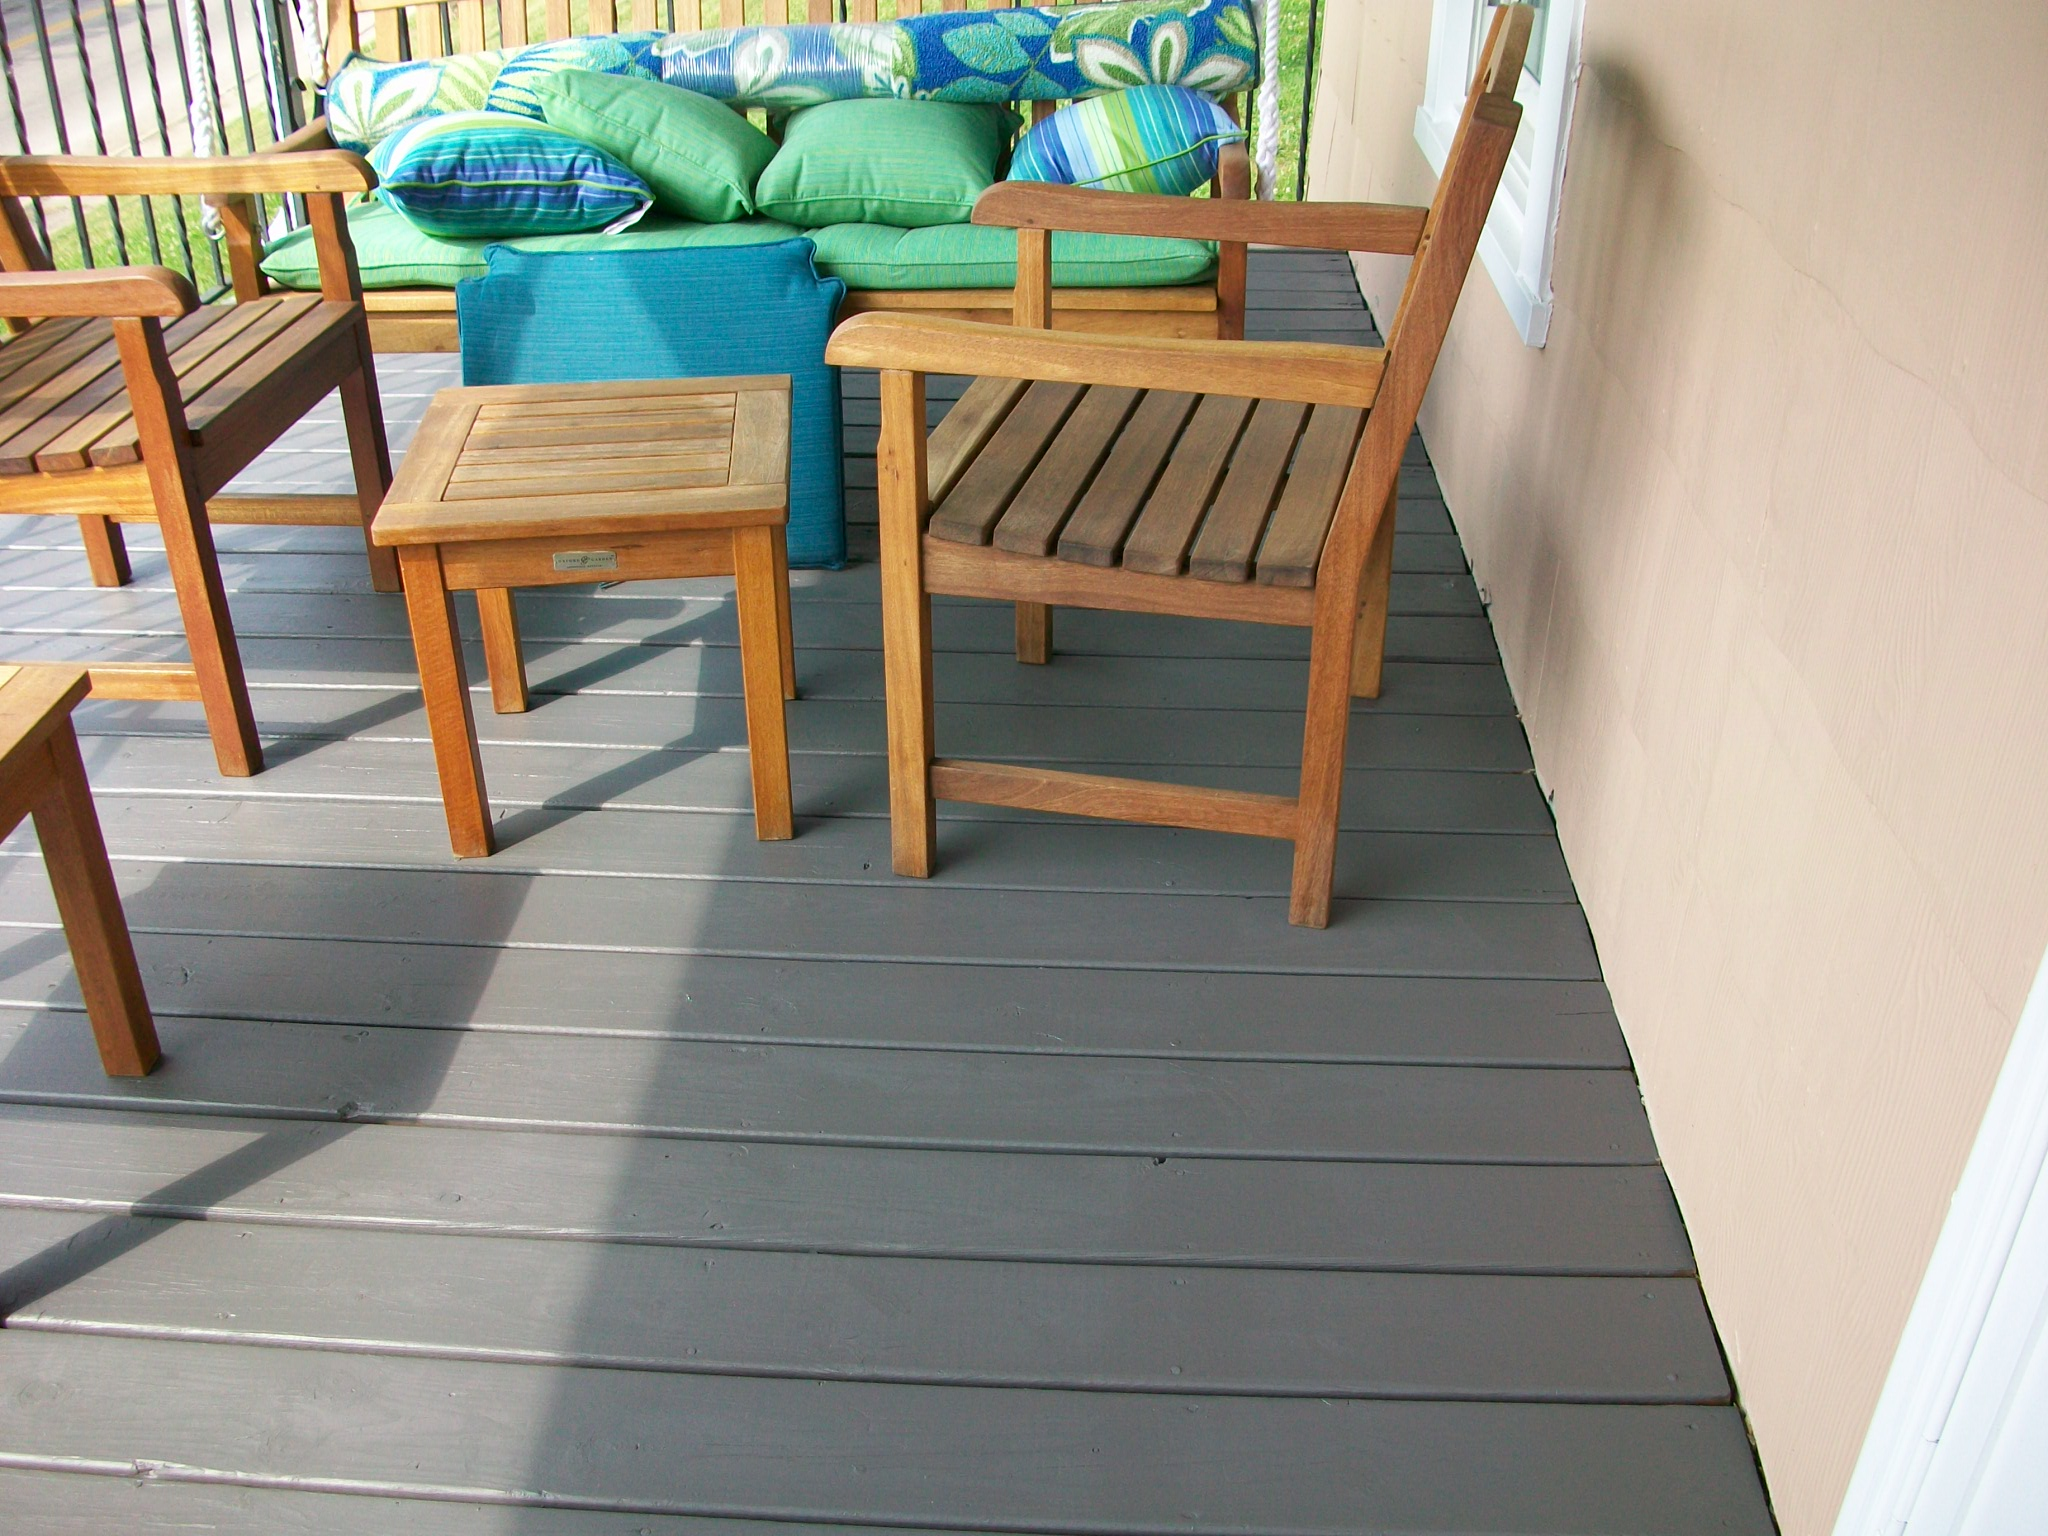 Patio Floor Paint Colors Pictures Worth Thousands Of Words And Roads Less  Traveled . Behr Porch ...